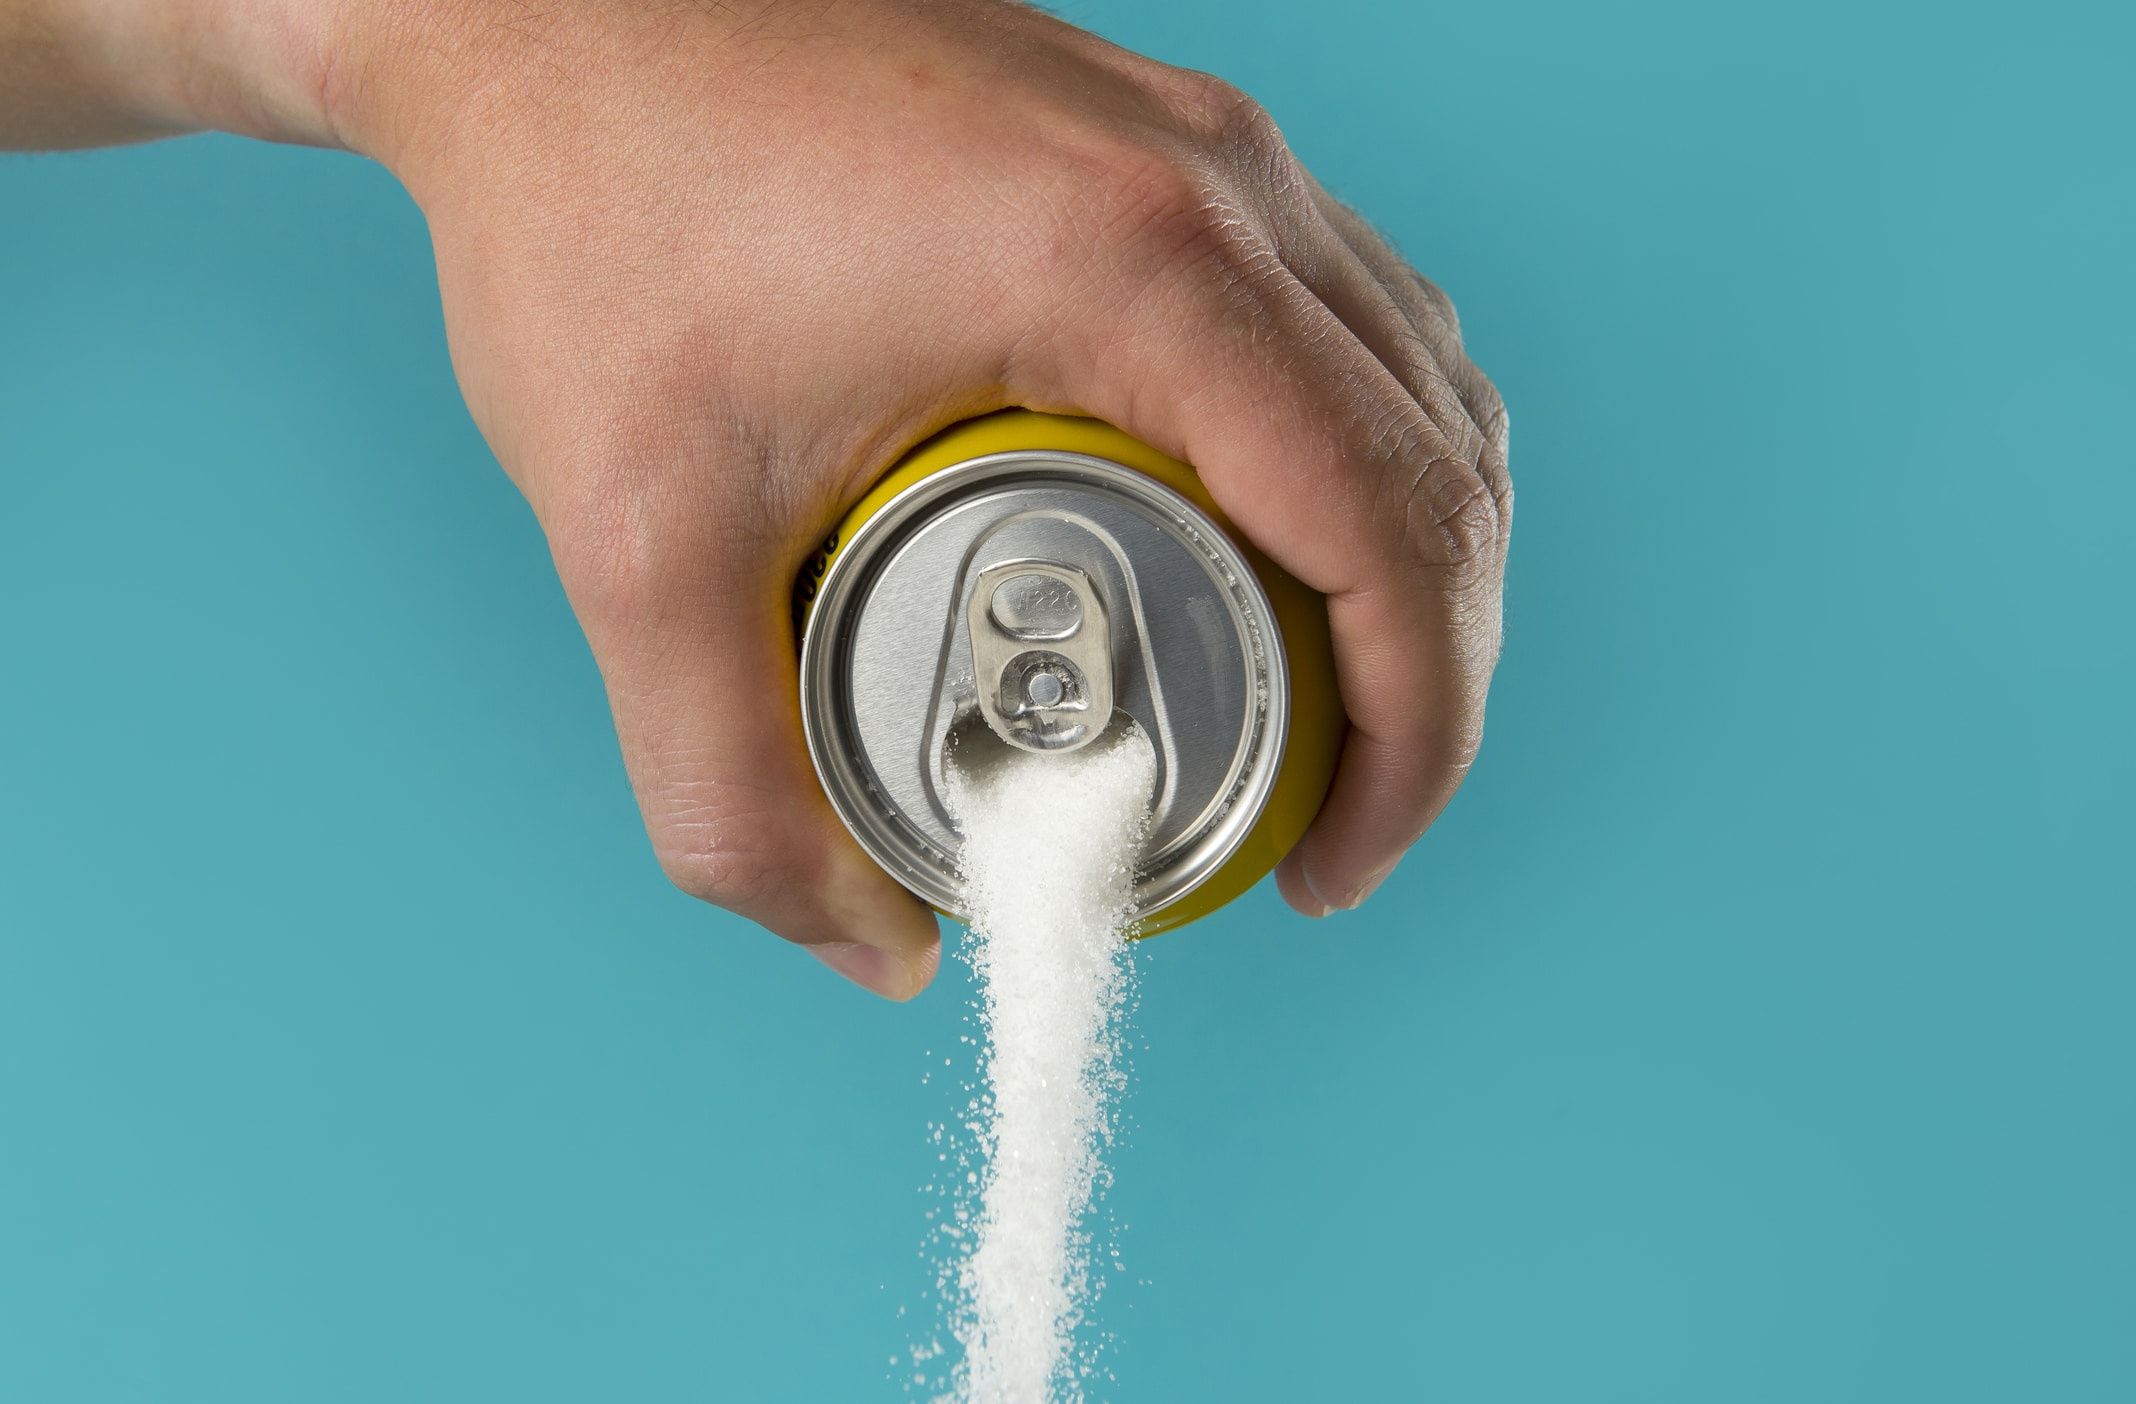 How You Can Cut Down On Sugar